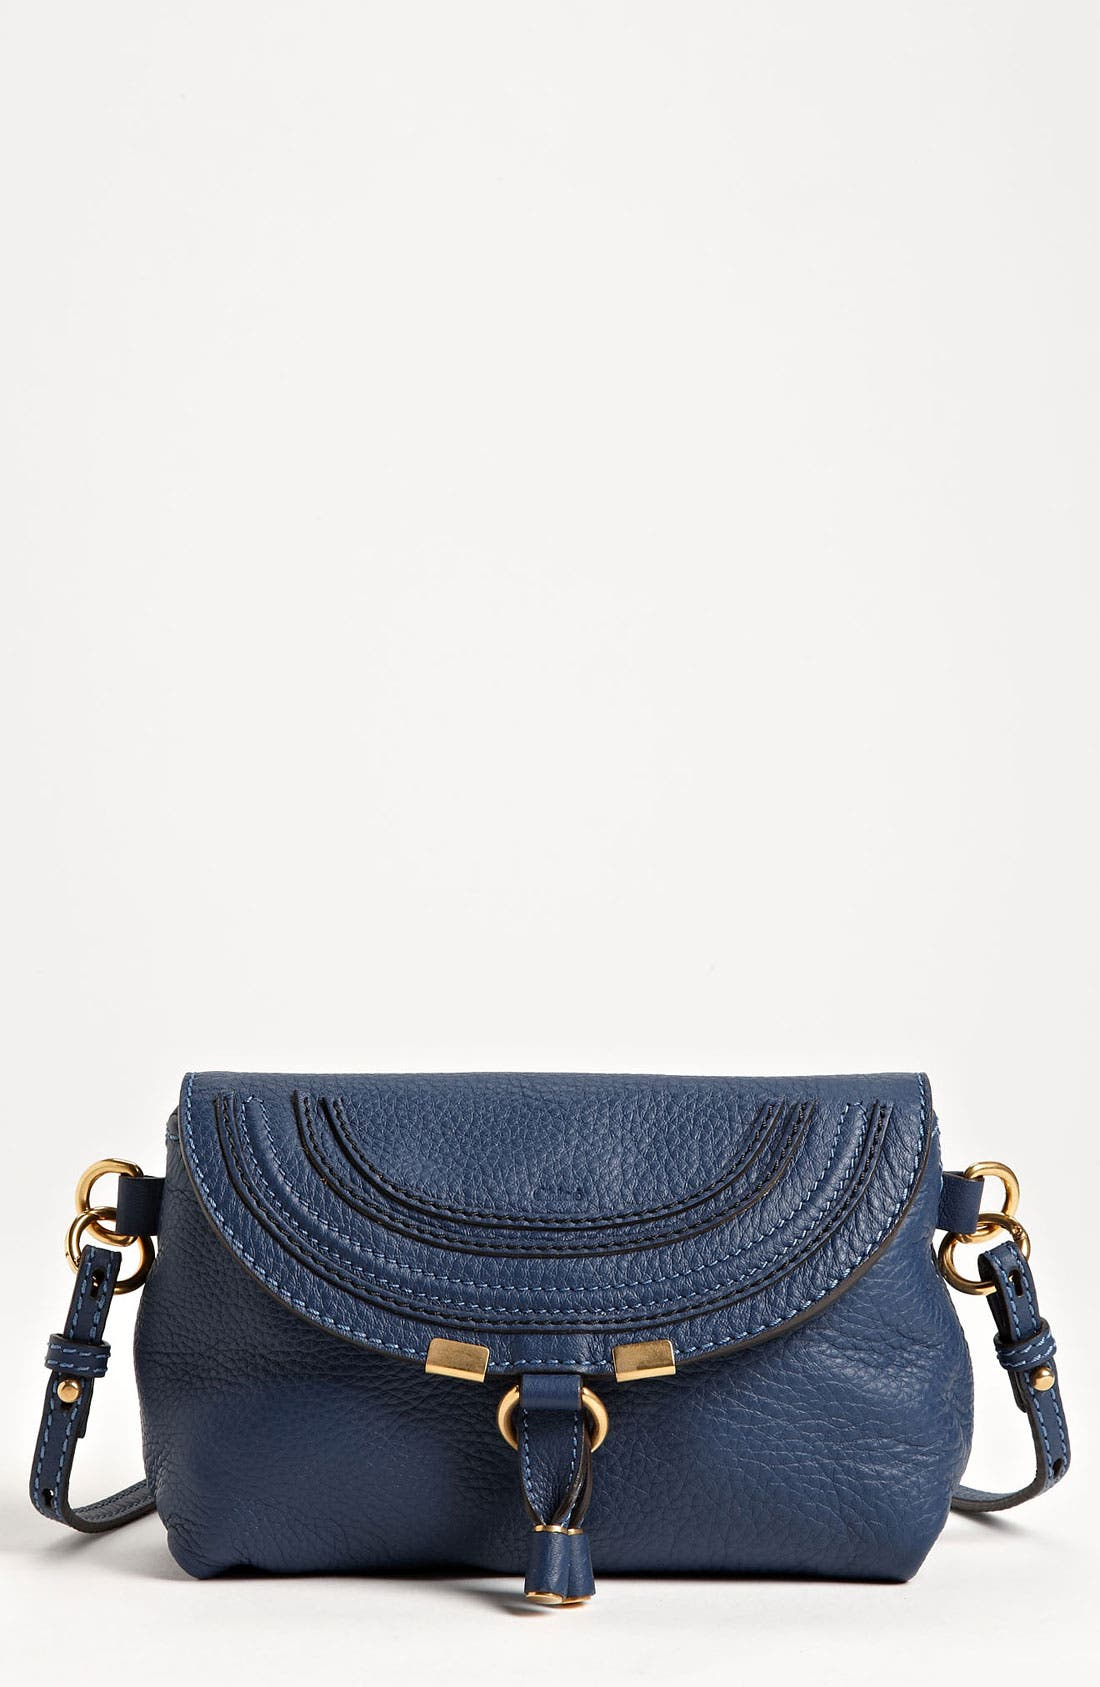 Main Image - Chloé 'Marcie' Calfskin Leather Crossbody Bag